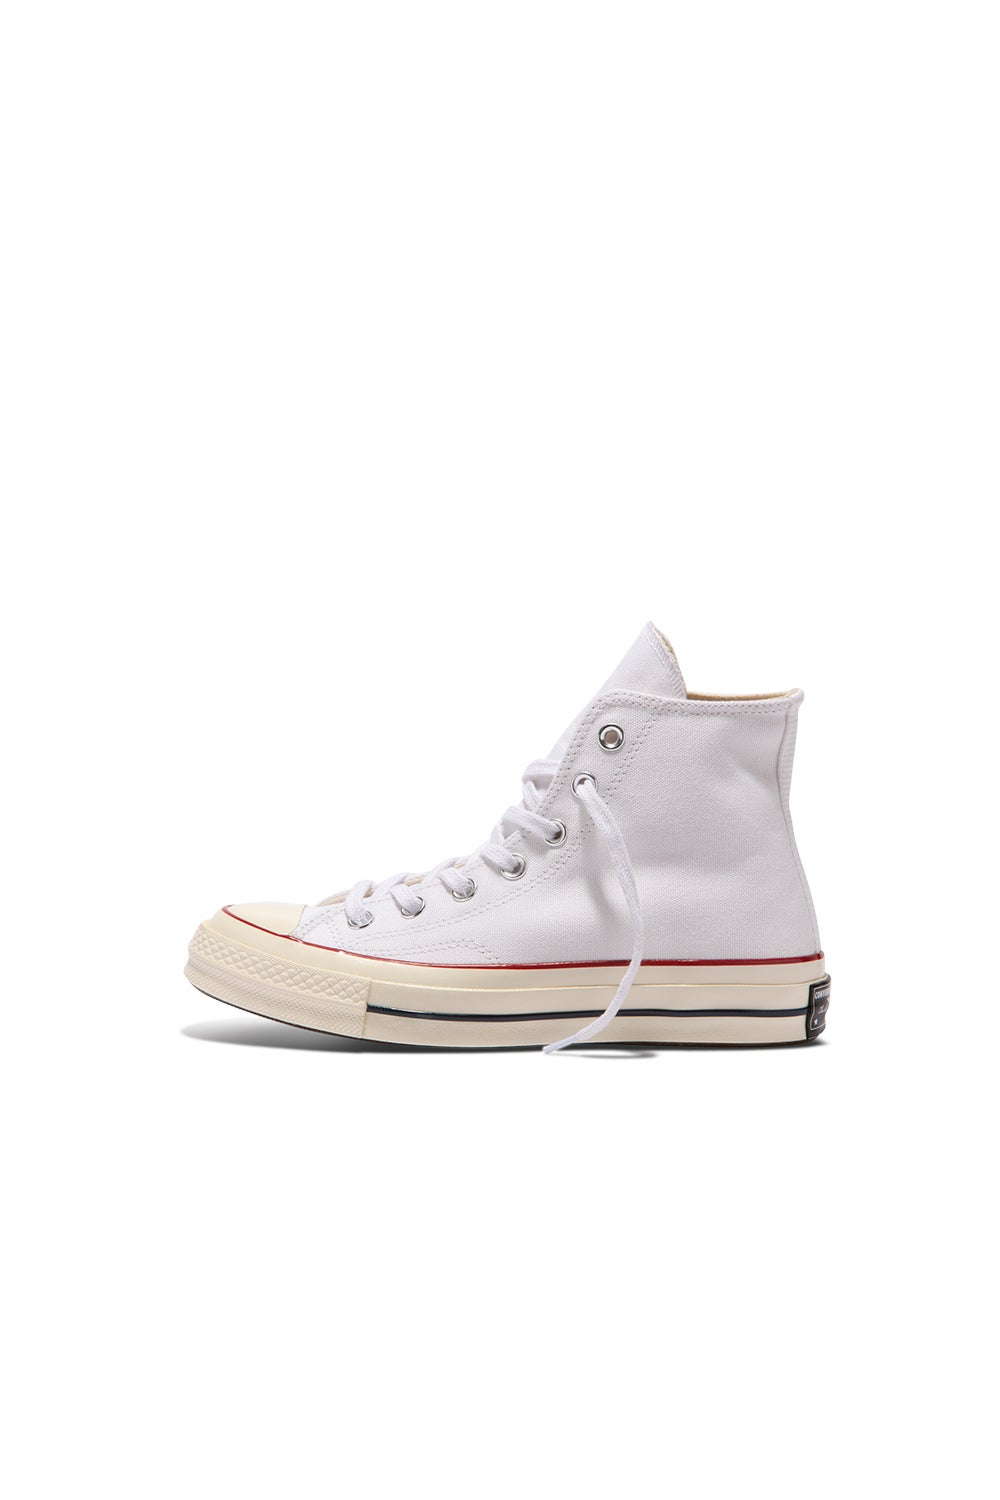 Converse Chuck Taylor All Star 70 High White